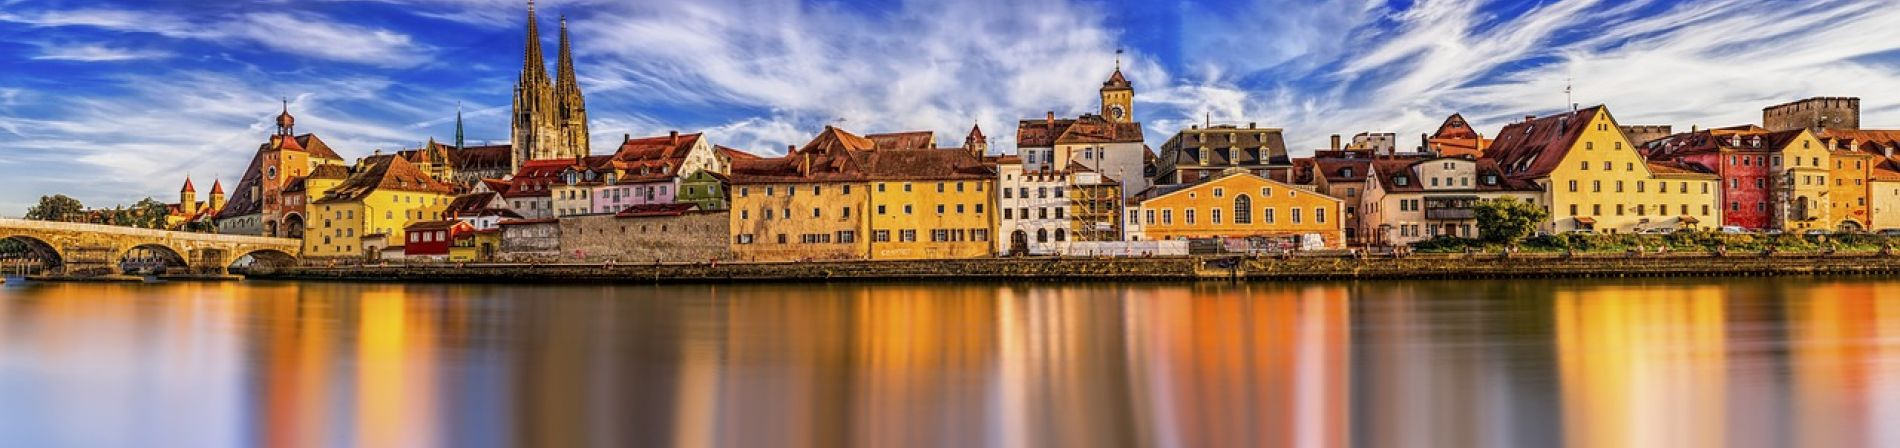 European River Cruise itinerary